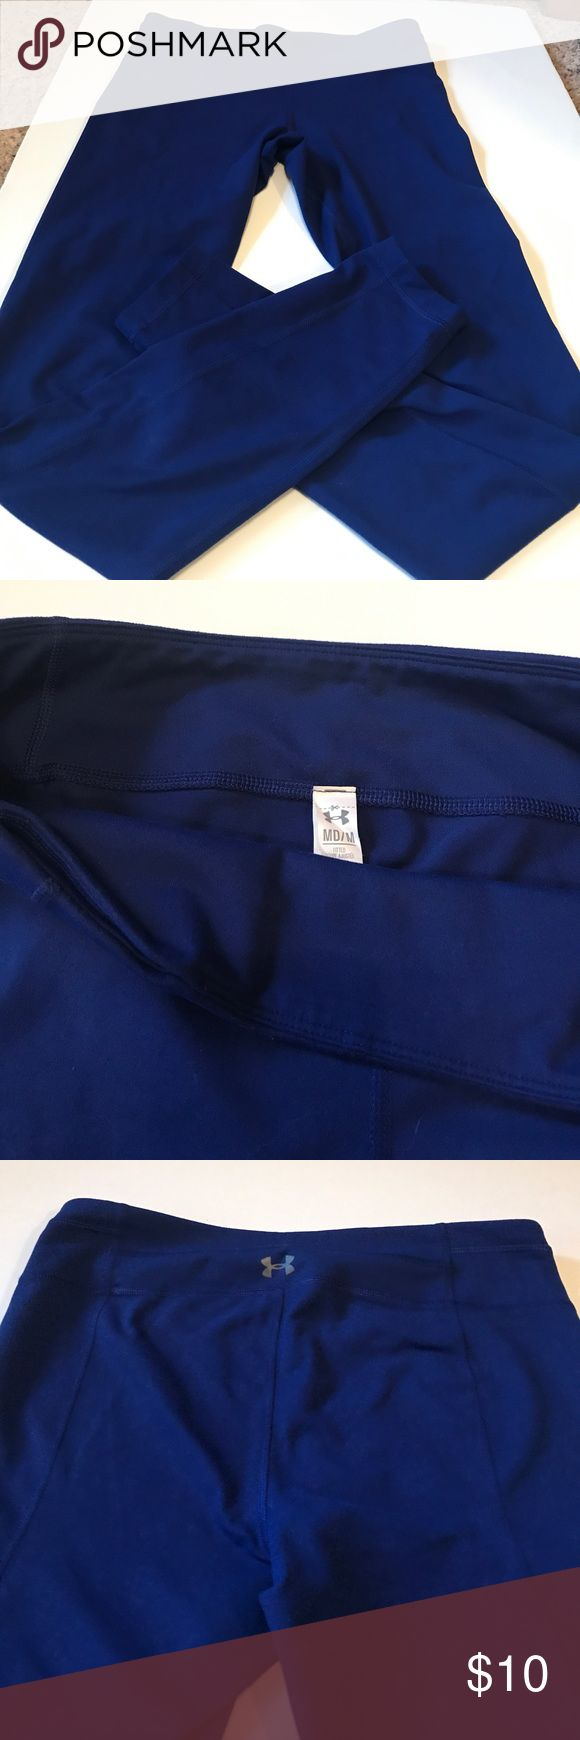 Royal blue Under Armour long large workout pants Royal blue workout tights. Size Medium. Great shape. Key pocket. Under Armour Pants Leggings